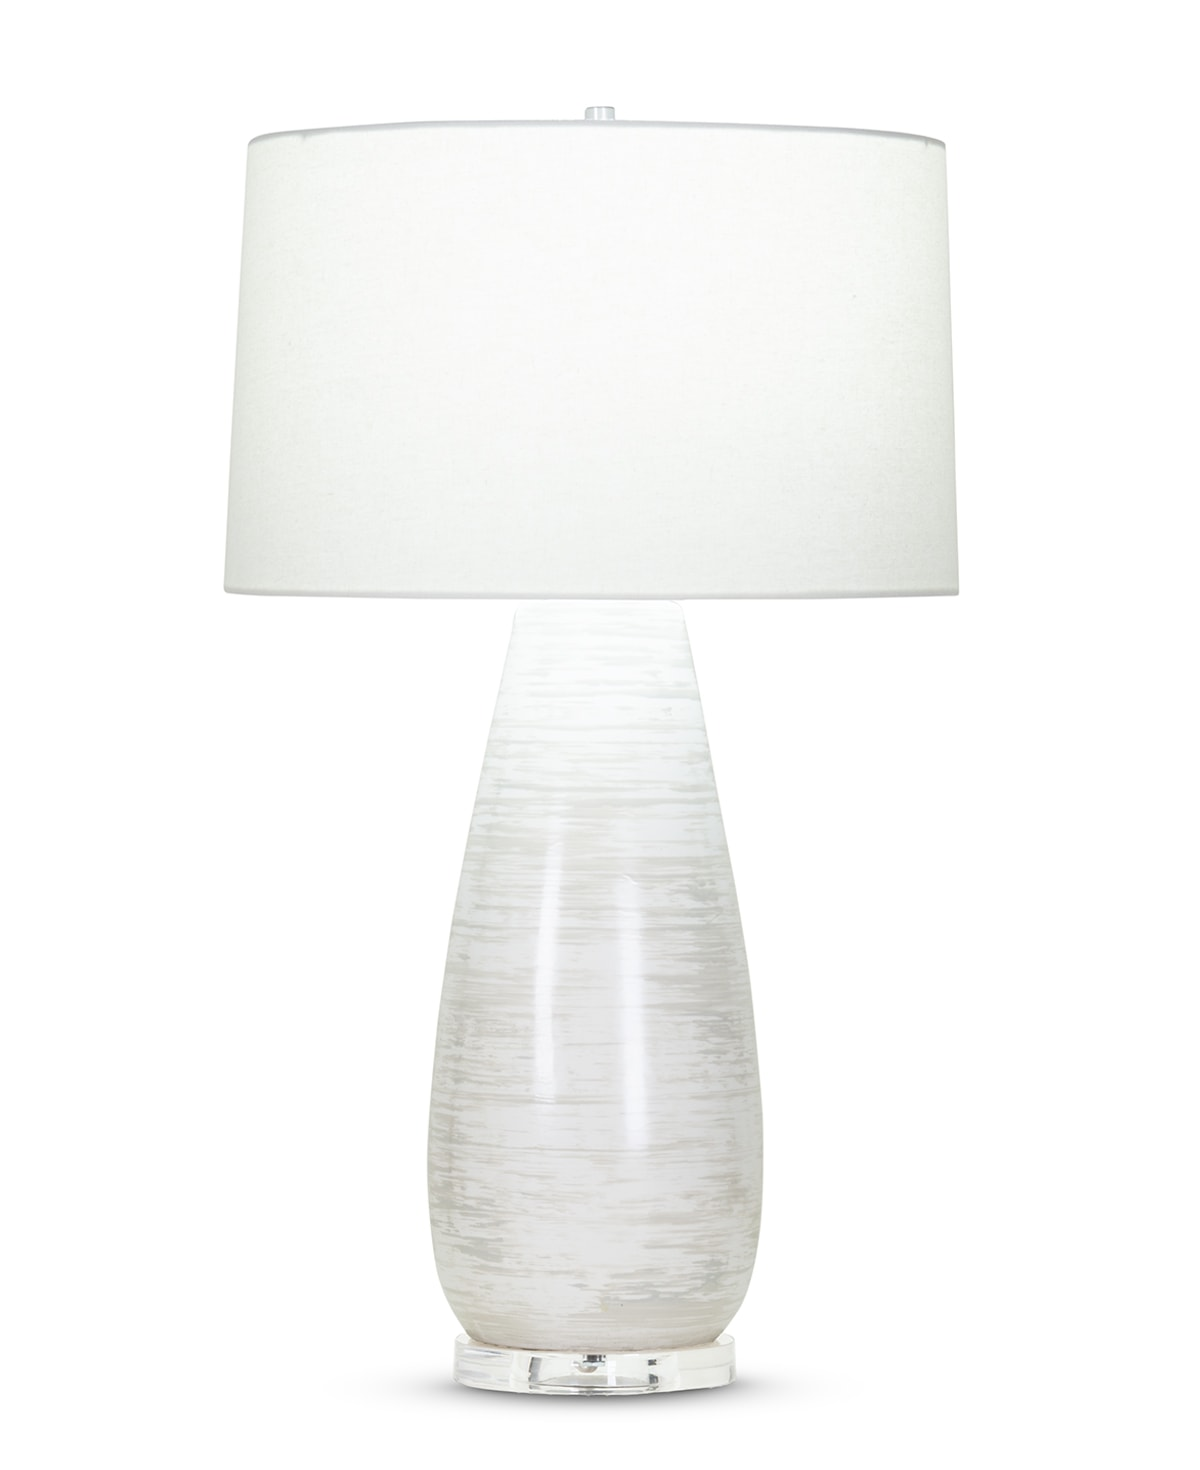 FlowDecor Simone Table Lamp in ceramic with off-white finish and light grey brush strokes and acrylic base and off-white cotton tapered drum shade (# 4075)